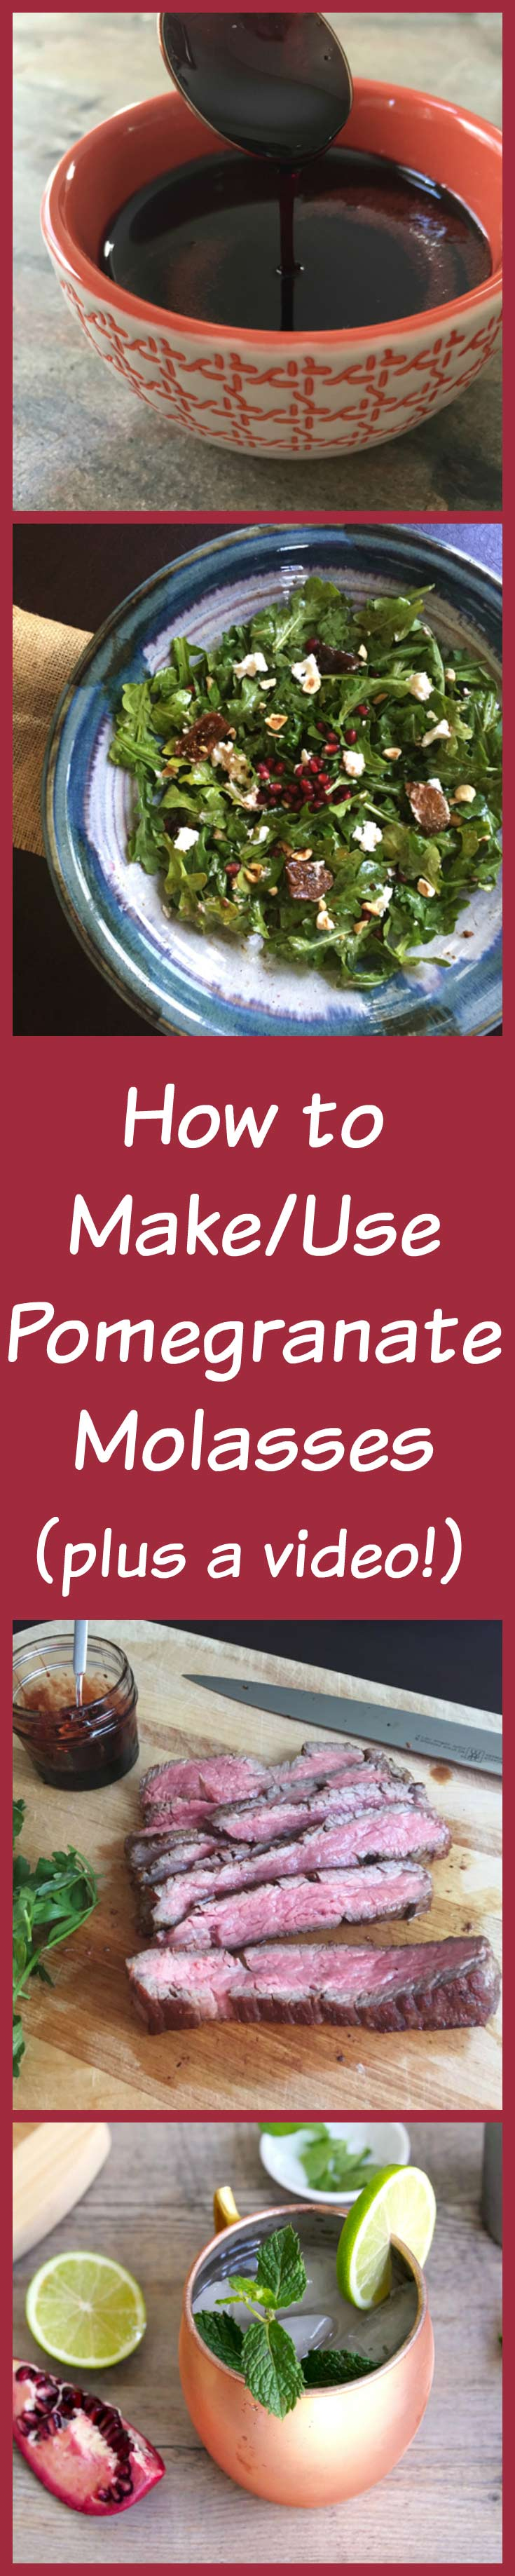 how to make and use pomegranate molasses